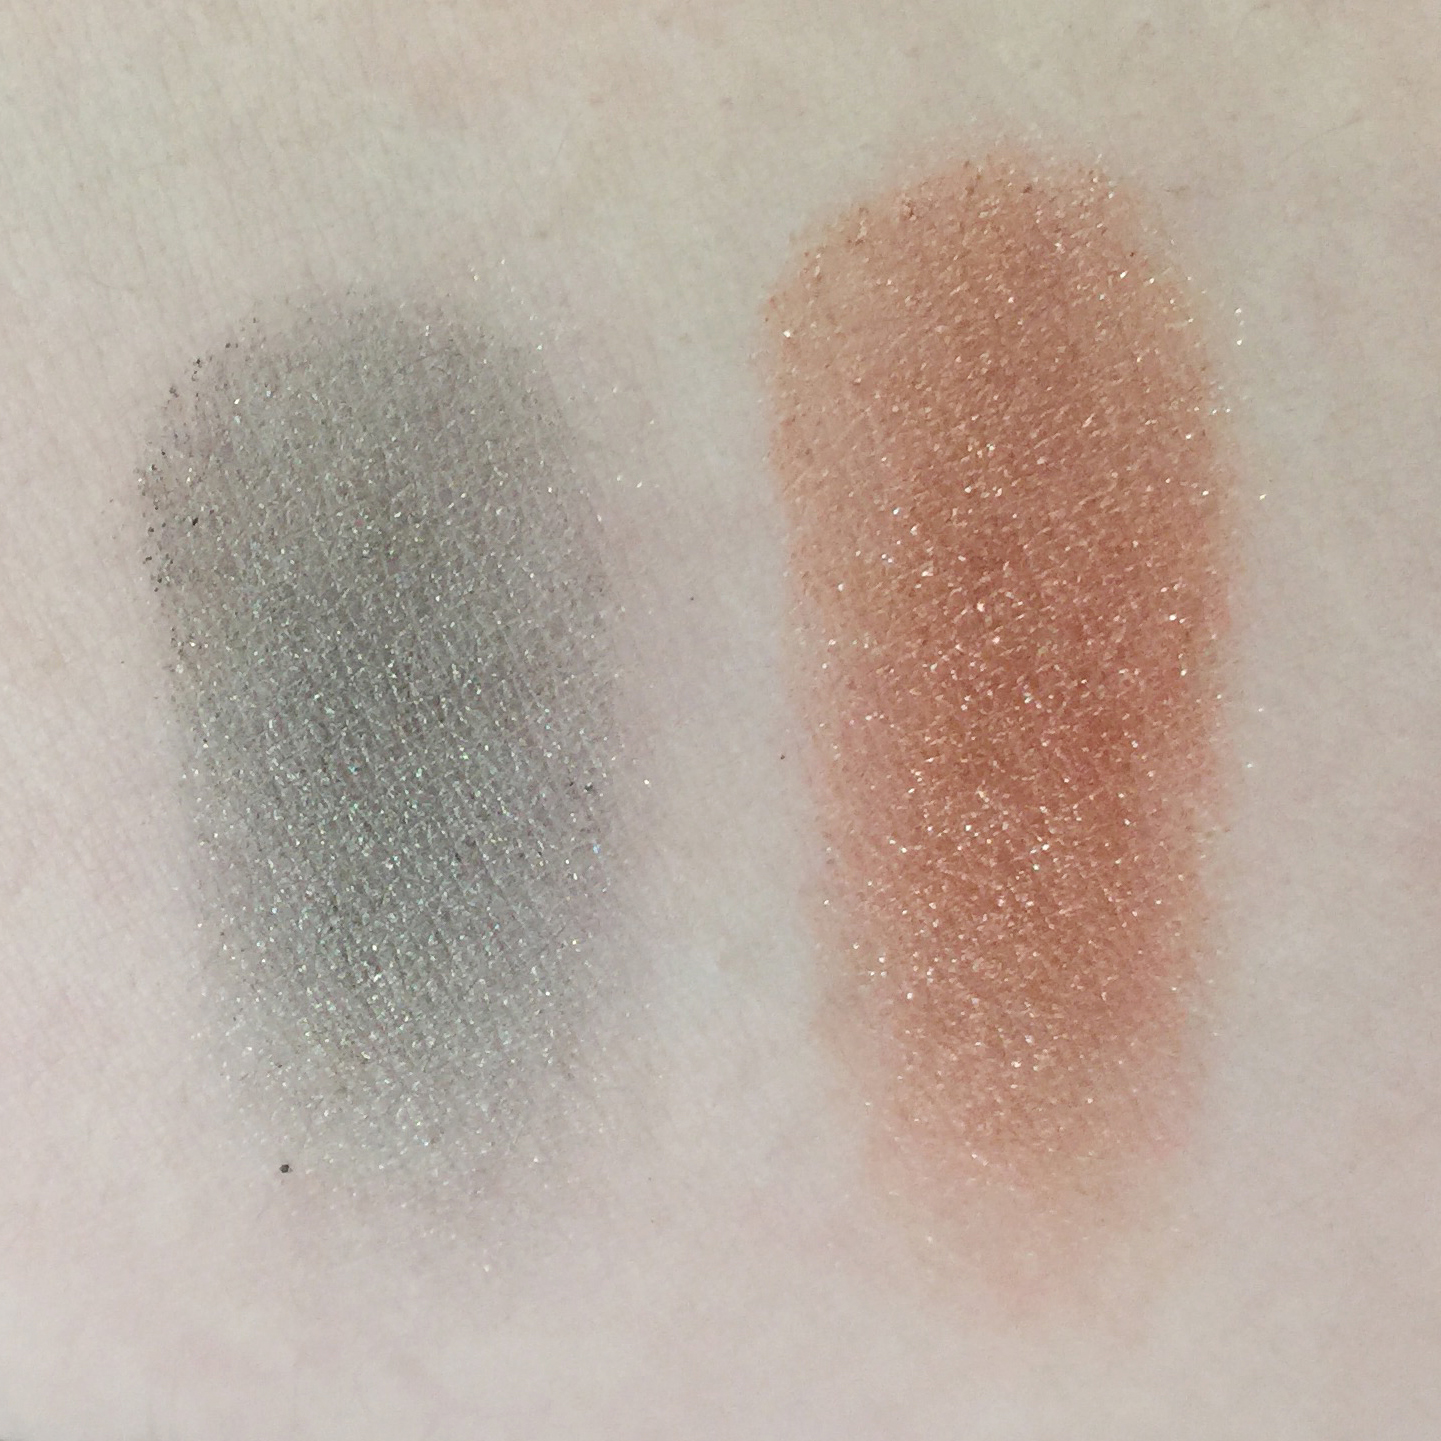 (L-R)M.A.C x Star Trek Pressed Pigment Eye Shadows in the shades 'Bird of Prey' and 'To Boldly Go'-in natural light